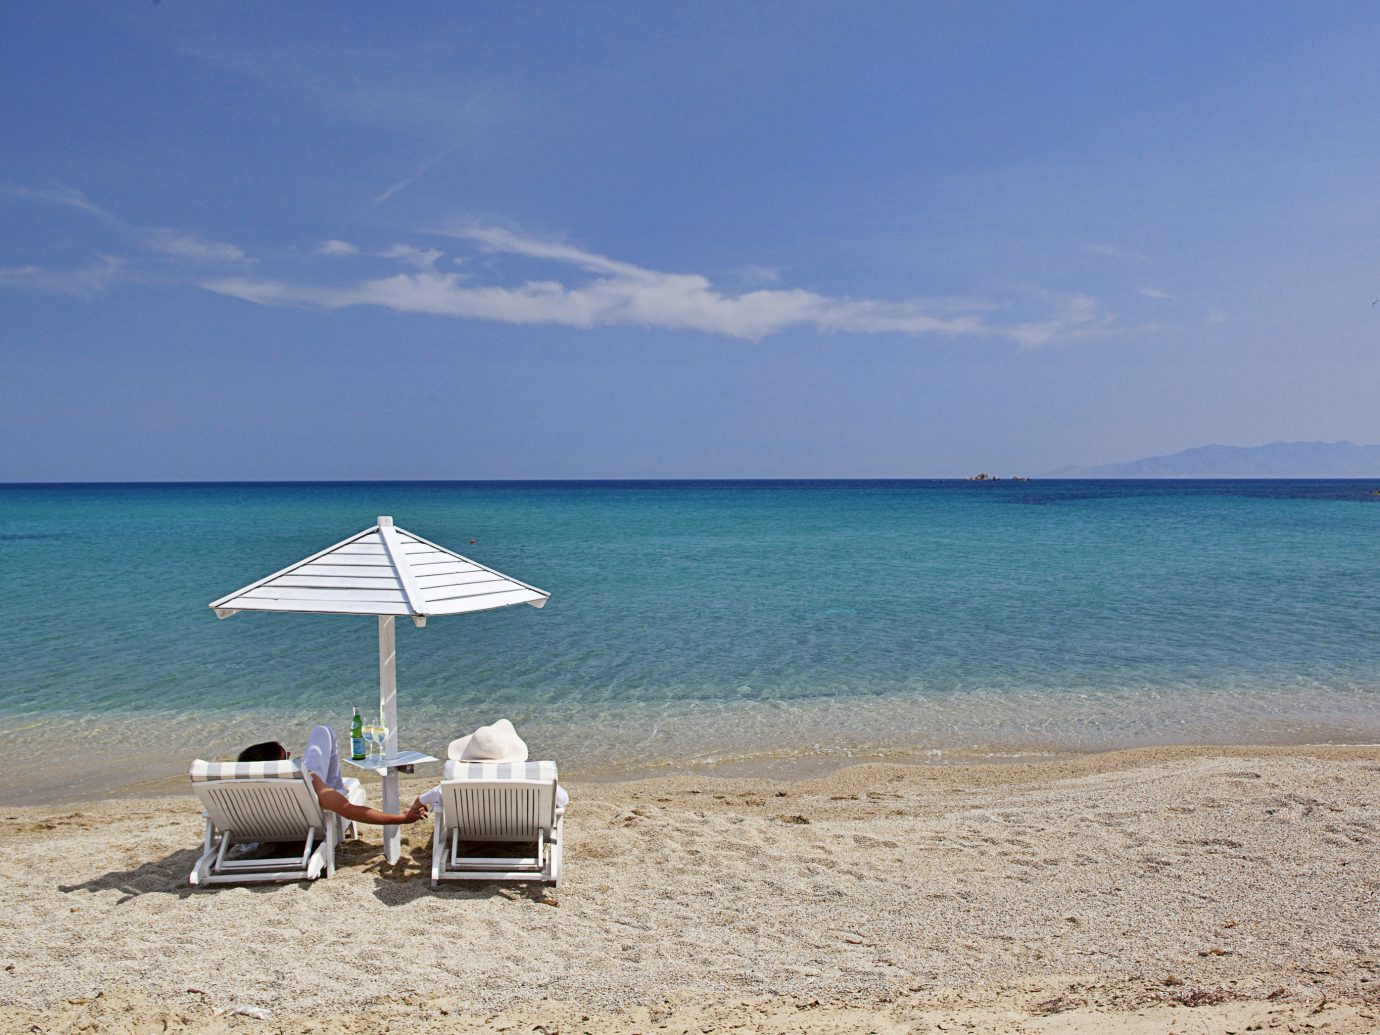 Beach Beachfront Budget Island Lounge Outdoor Activities Outdoors Scenic views Waterfront sky outdoor water shore Sea Ocean body of water horizon Nature Coast vacation sand bay cape caribbean sandy day